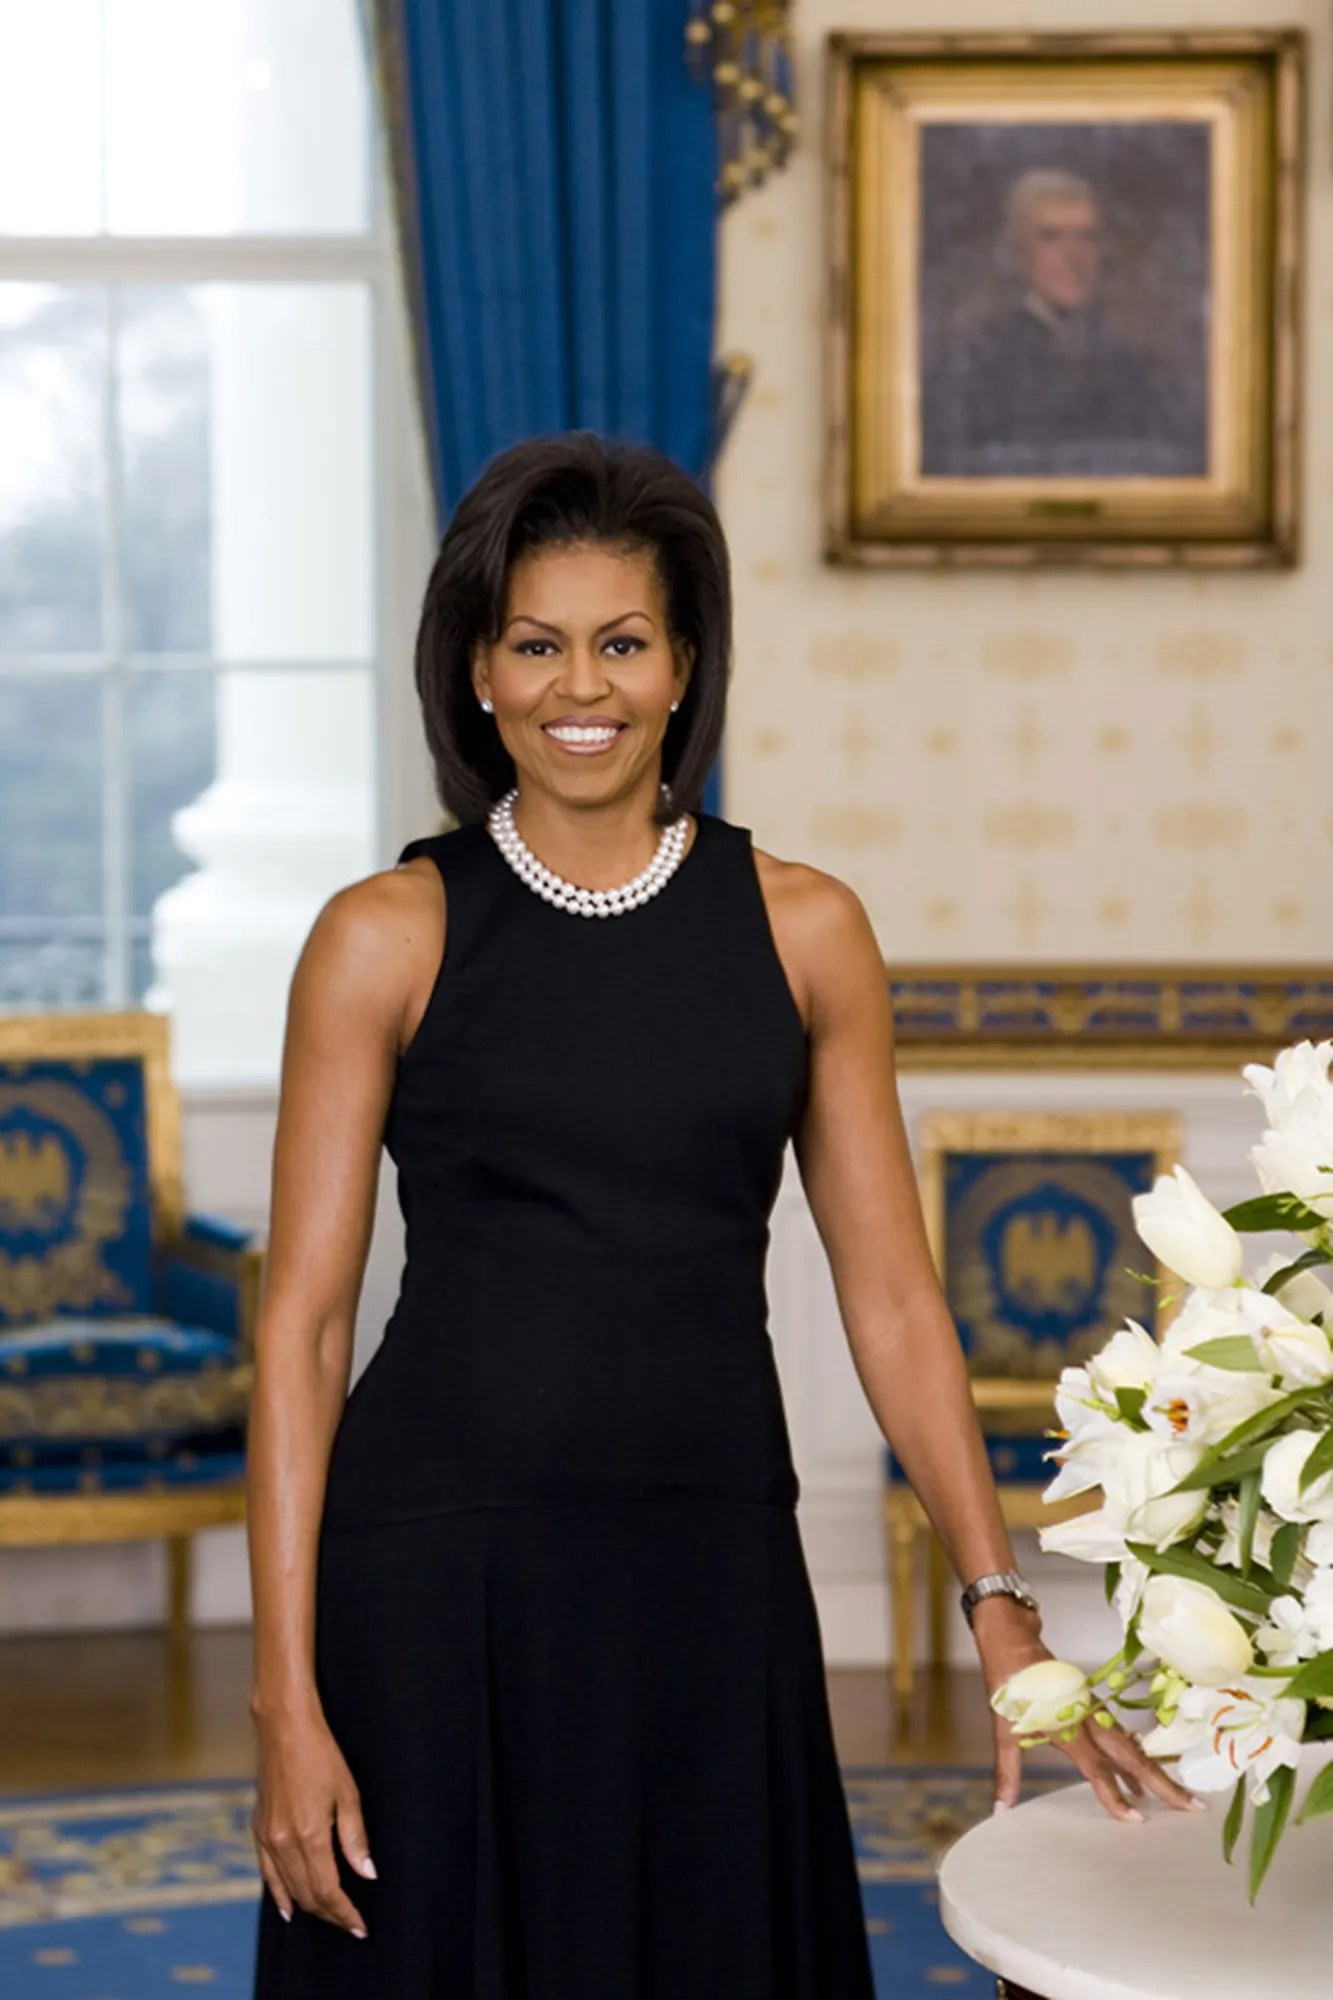 Image result for first lady portraits in white house